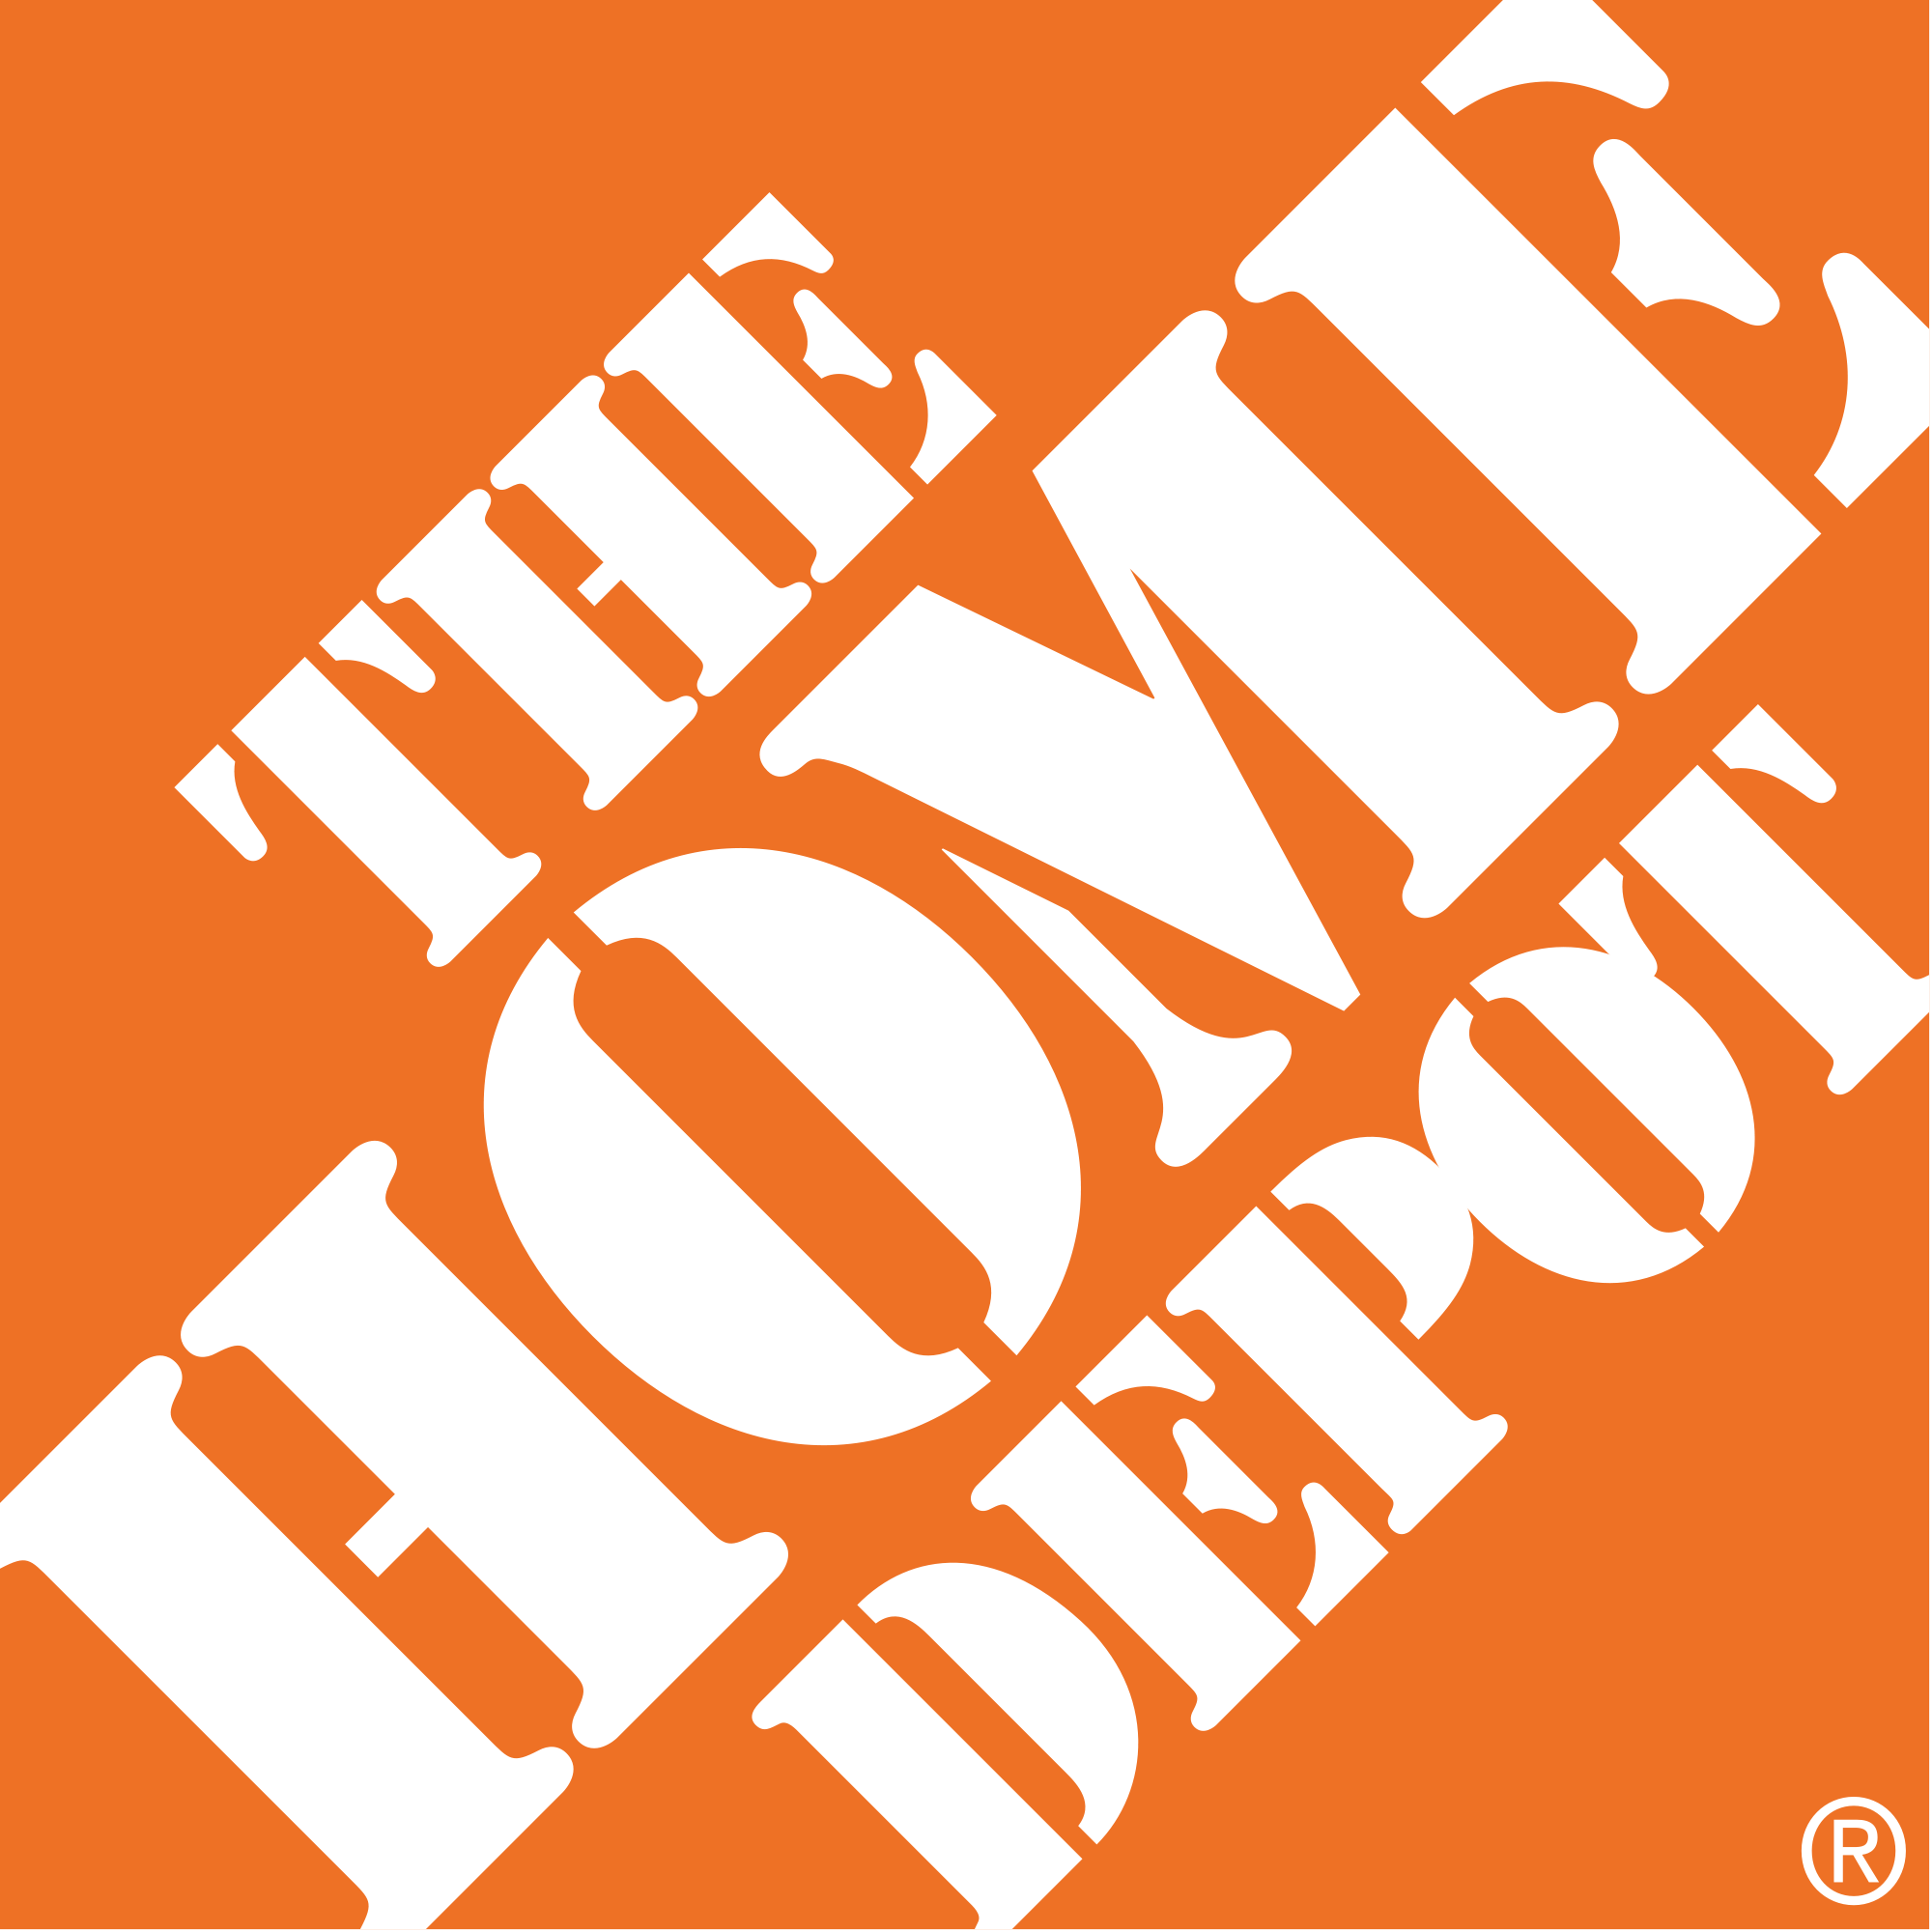 Up To 20% OFF Home Depot Coupons & Sales